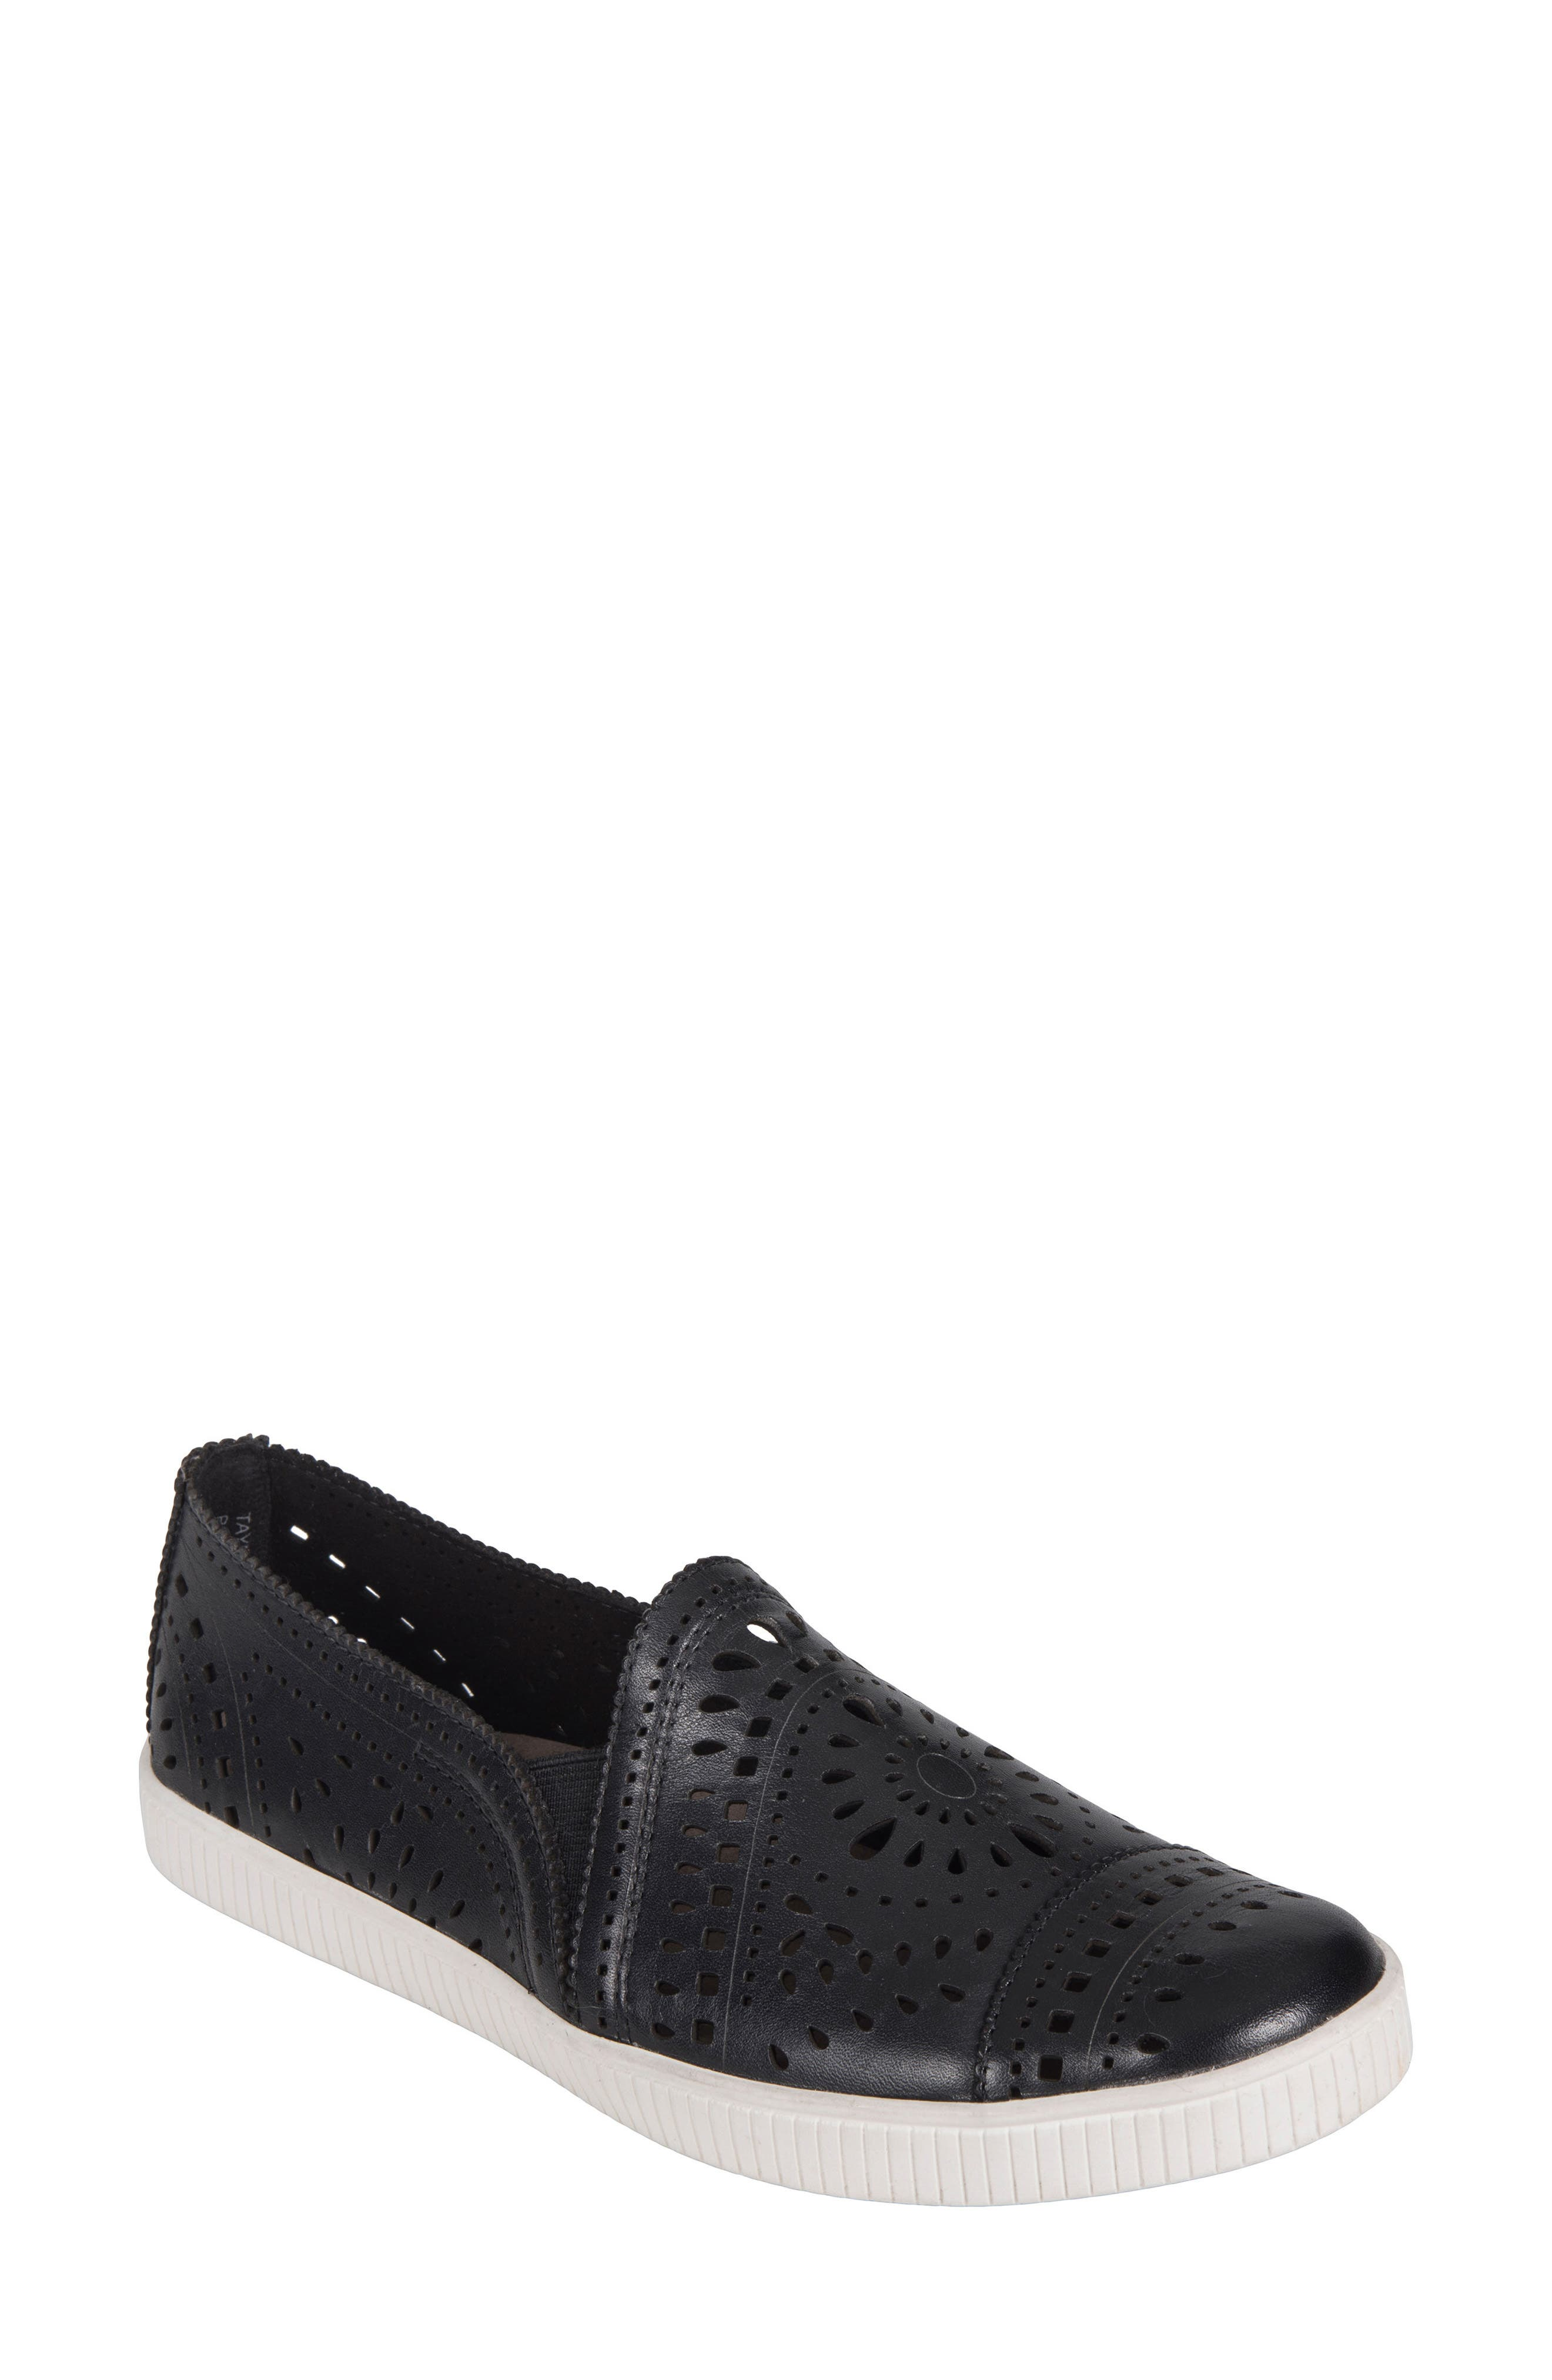 Tayberry Perforated Slip-On Sneaker,                         Main,                         color,